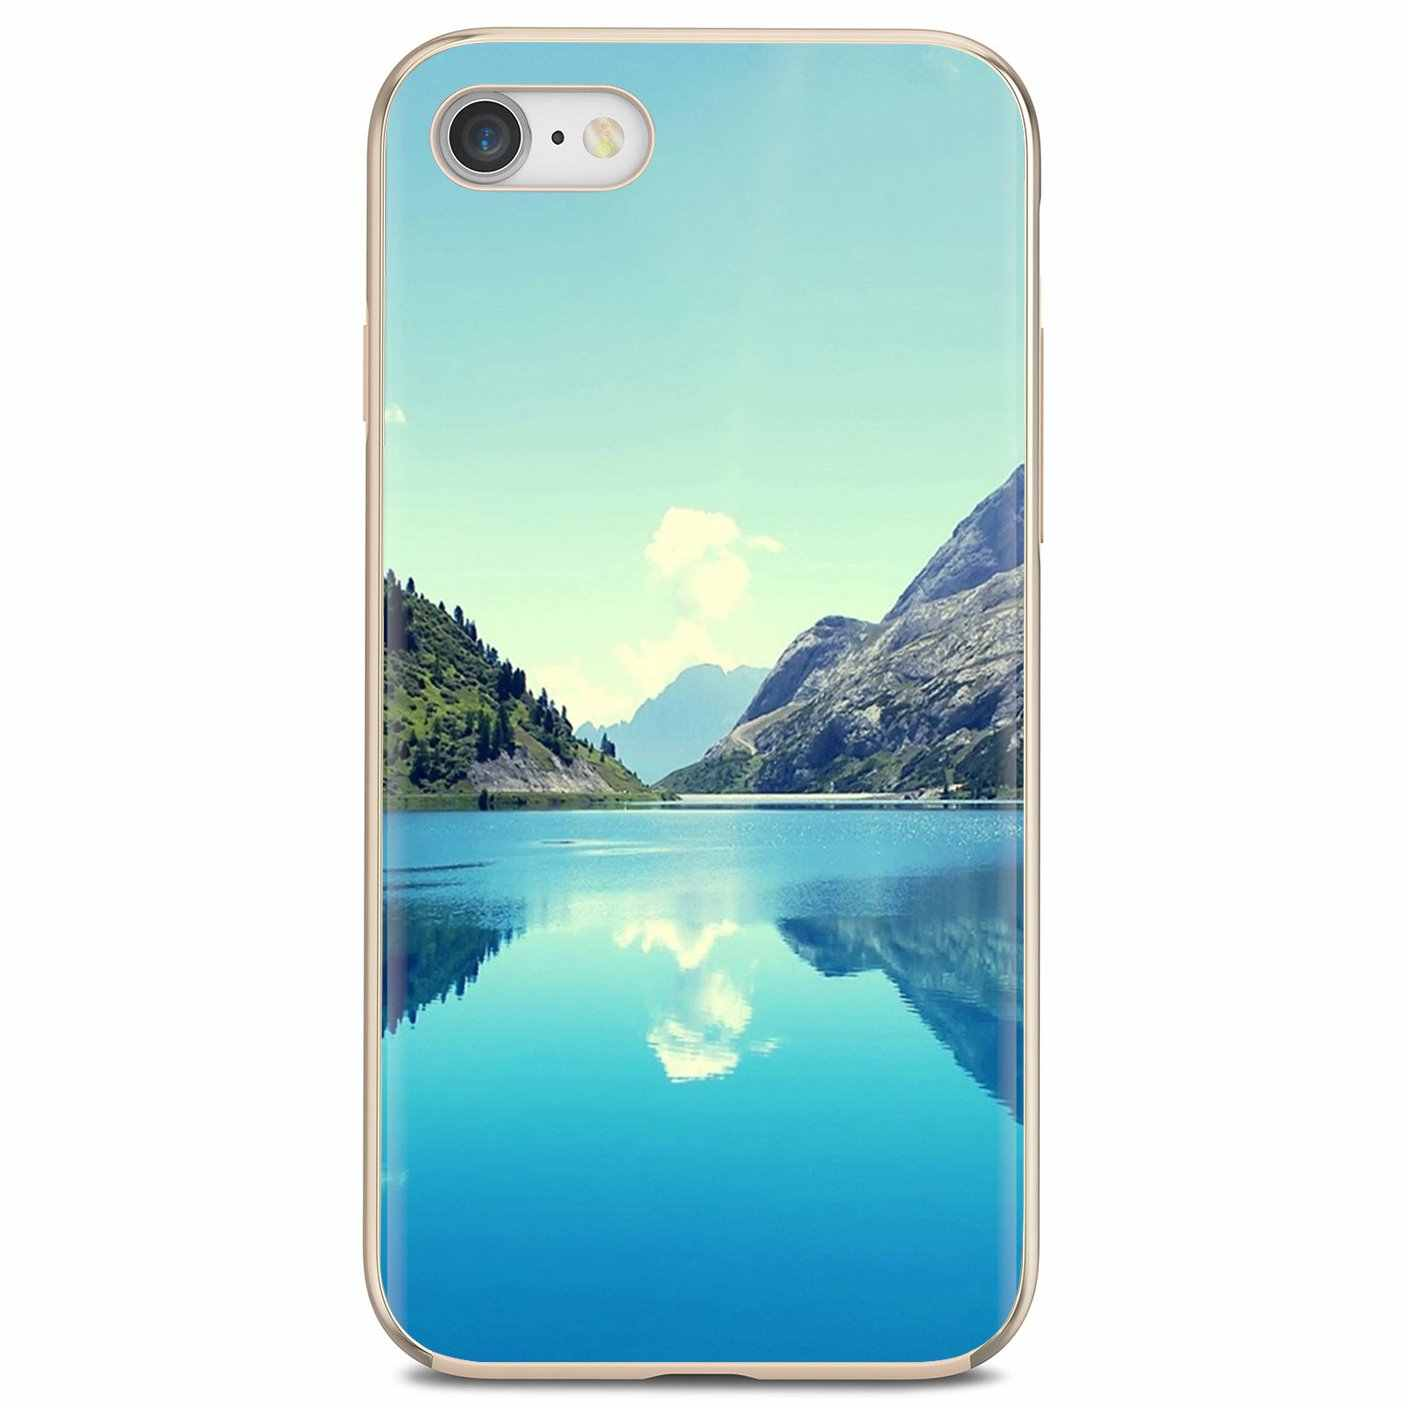 Magnificent Nature Scenery Wallpaper 2 Soft Cover For Iphone 11 Pro 4 4s 5 5s Se 5c 6 6s 7 8 X 10 Xr Xs Plus Max For Ipod Touch Half Wrapped Cases Aliexpress